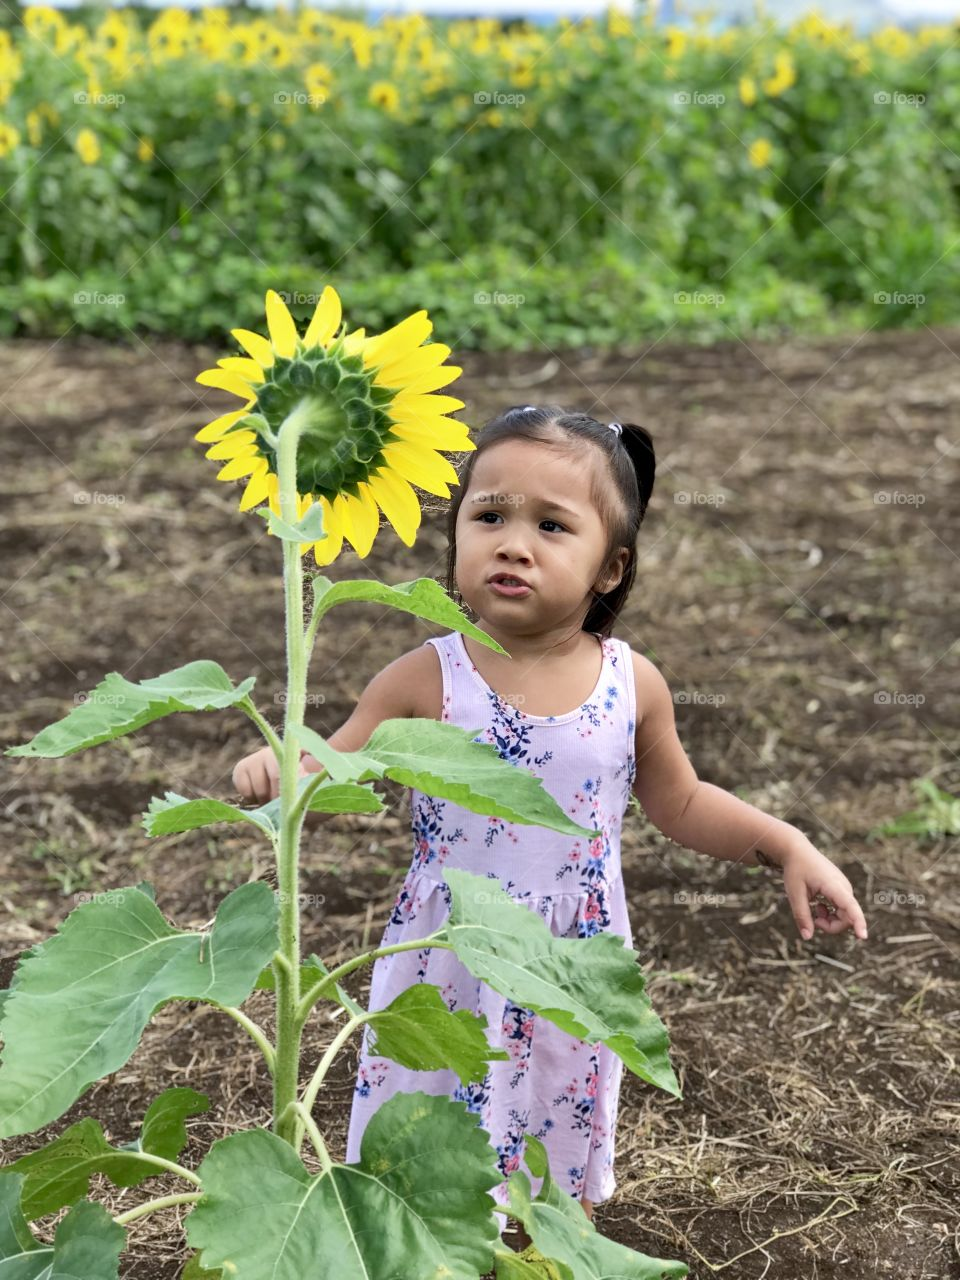 This 2 year old is curious about her  surroundings. She's not sure if she should touch the flower :)